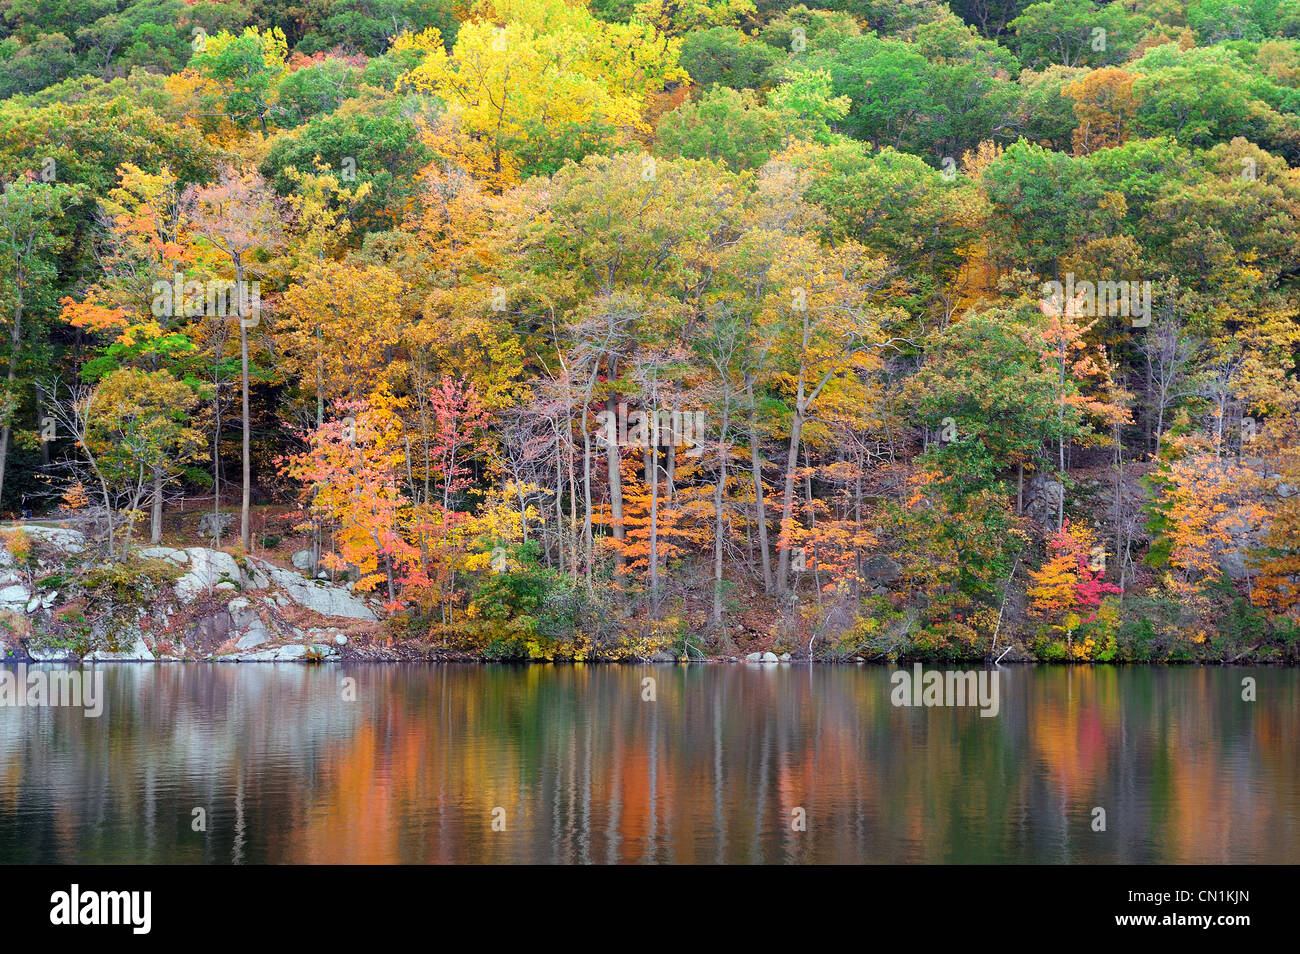 Bear Mountain with Hudson River in Autumn with colorful foliage and water reflection. - Stock Image